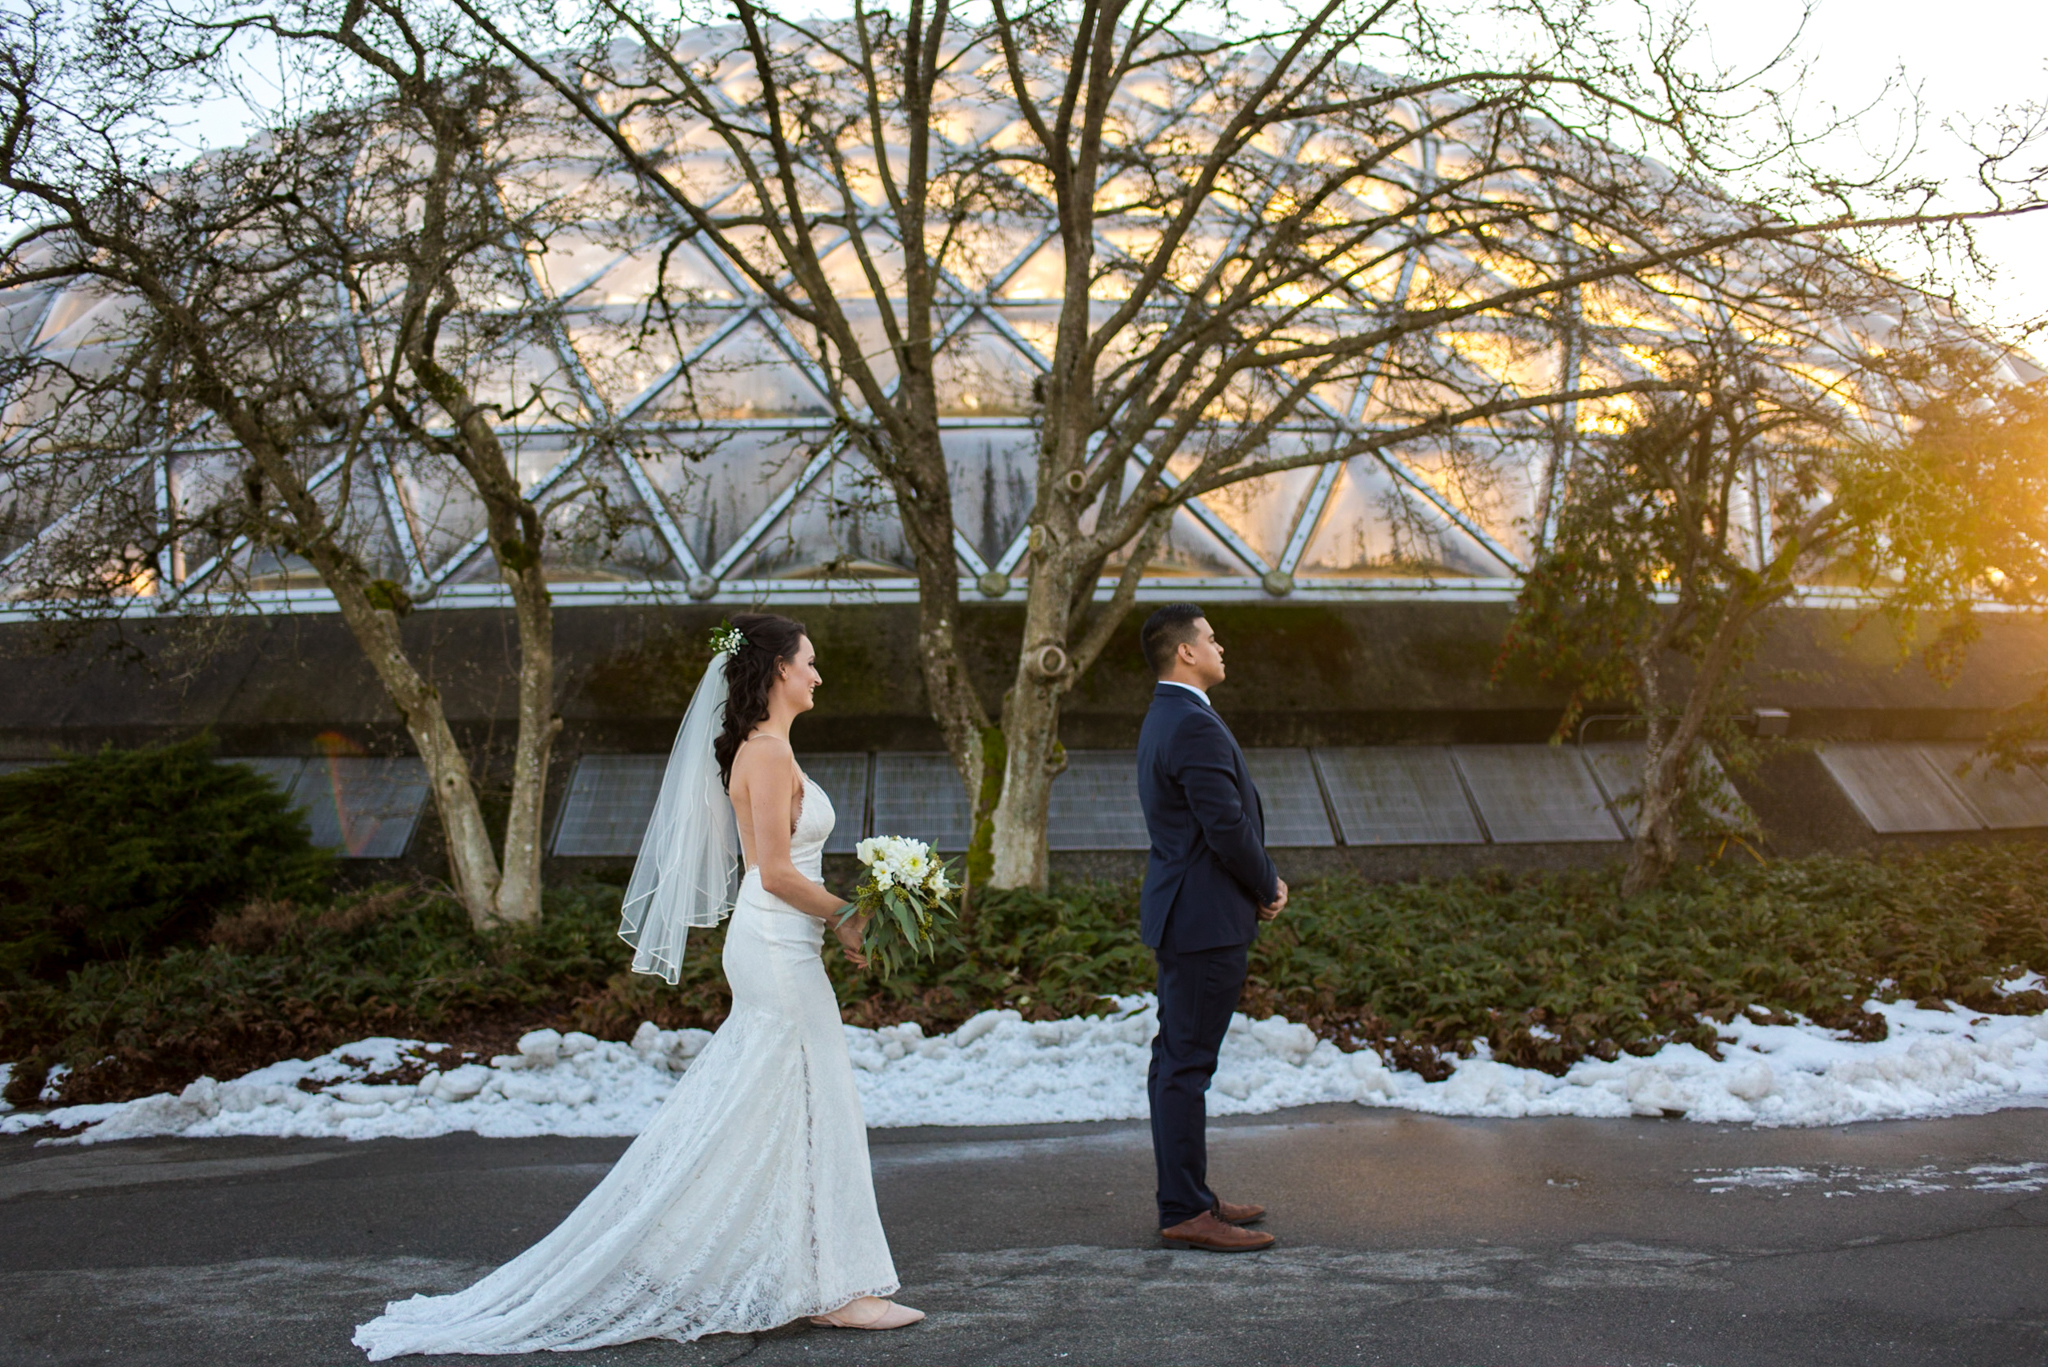 Queen Elizabeth Park Wedding Photographer-6.jpg